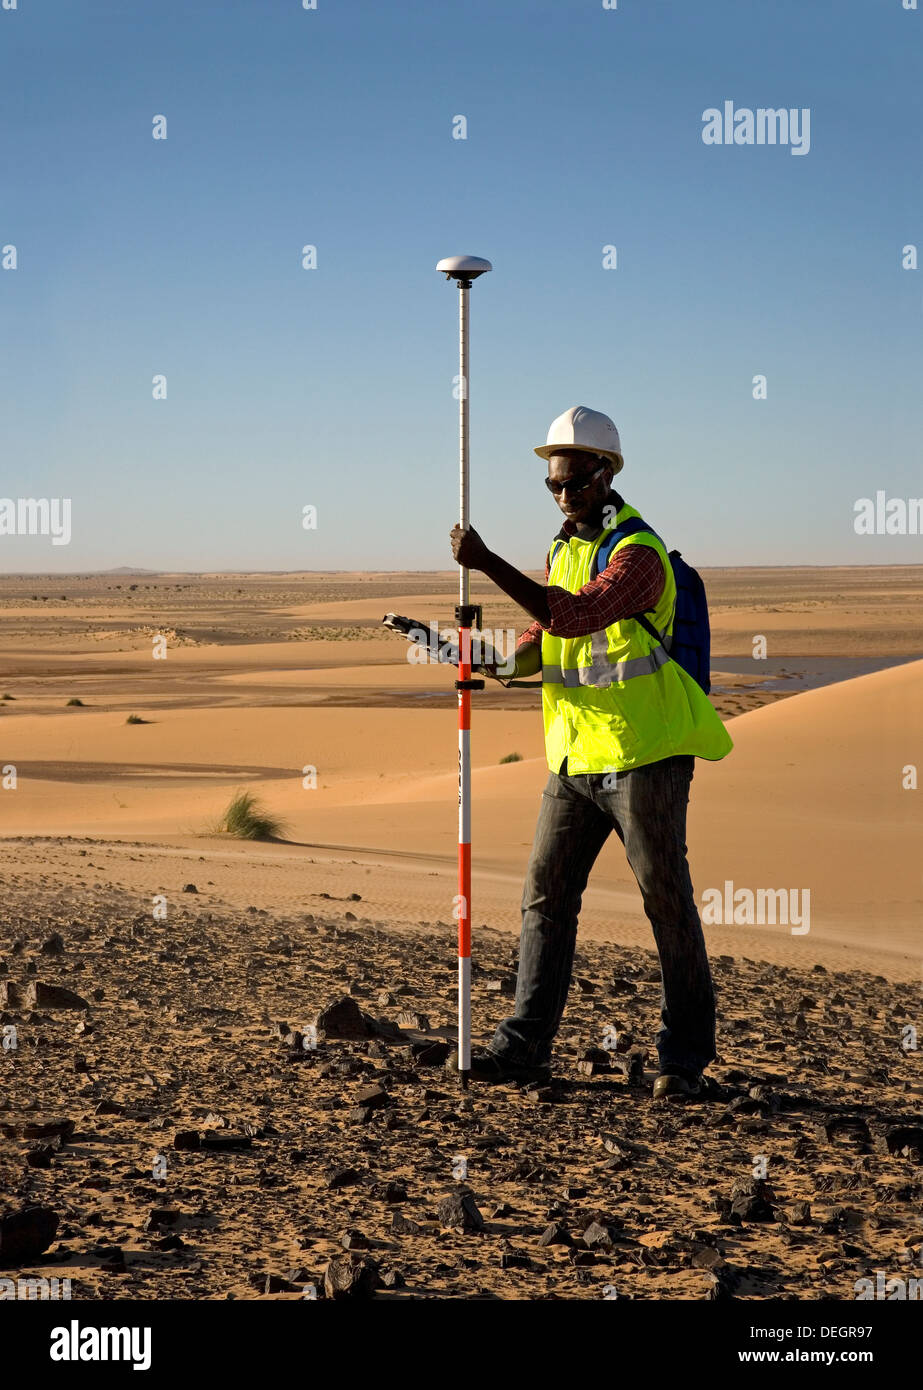 Geological surveyor using differential GPS equipment for a digital terrain survey in the dunes of the Sahara Desert, Mauritania - Stock Image